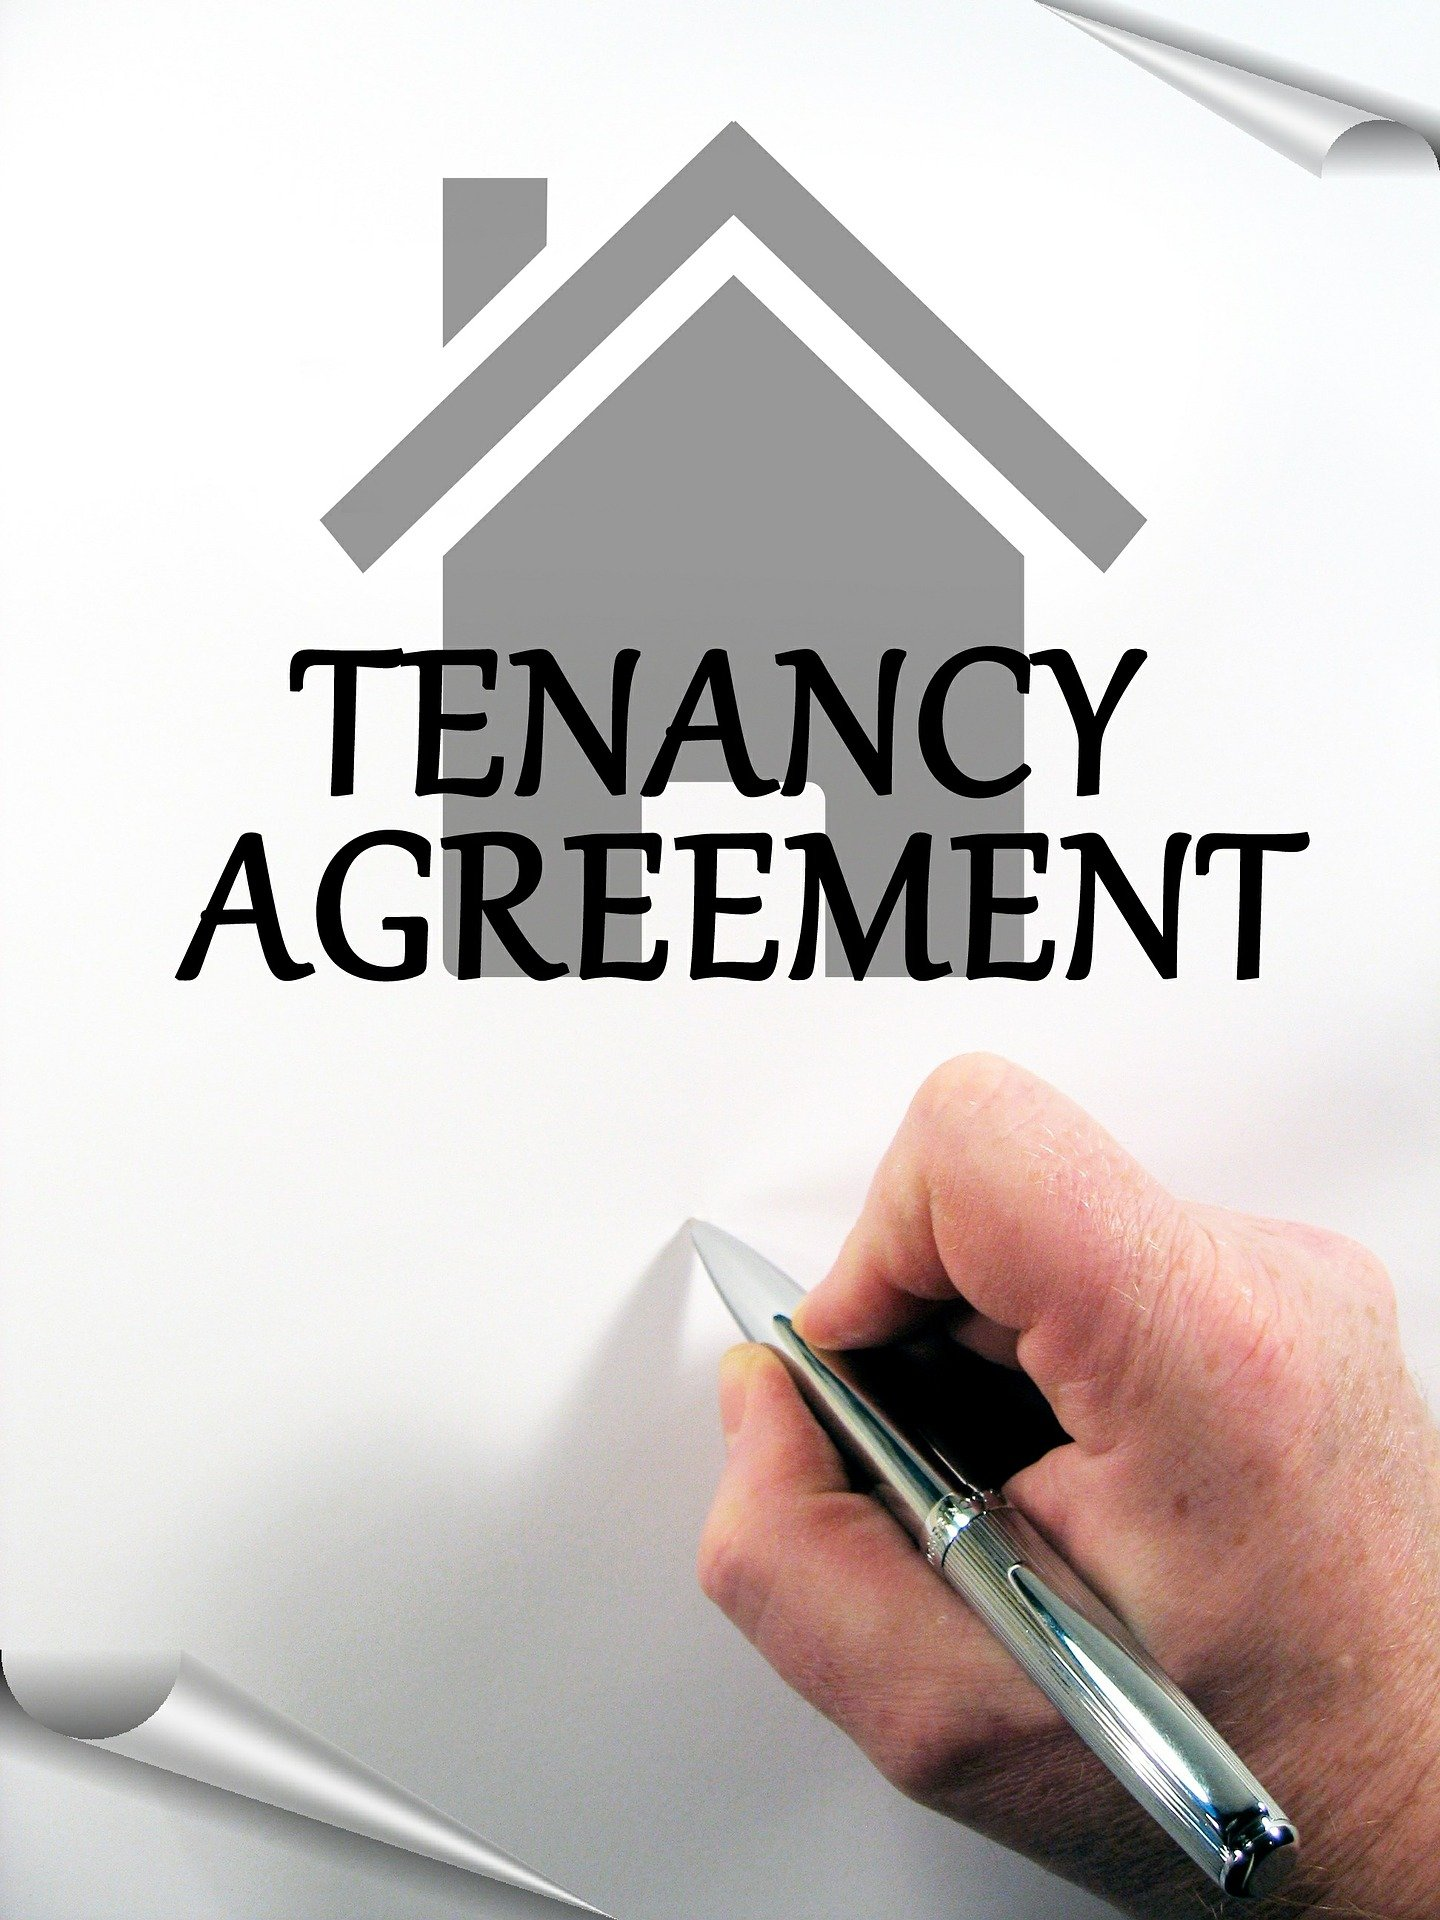 Tenancy Agreement - How to conduct tenant interview